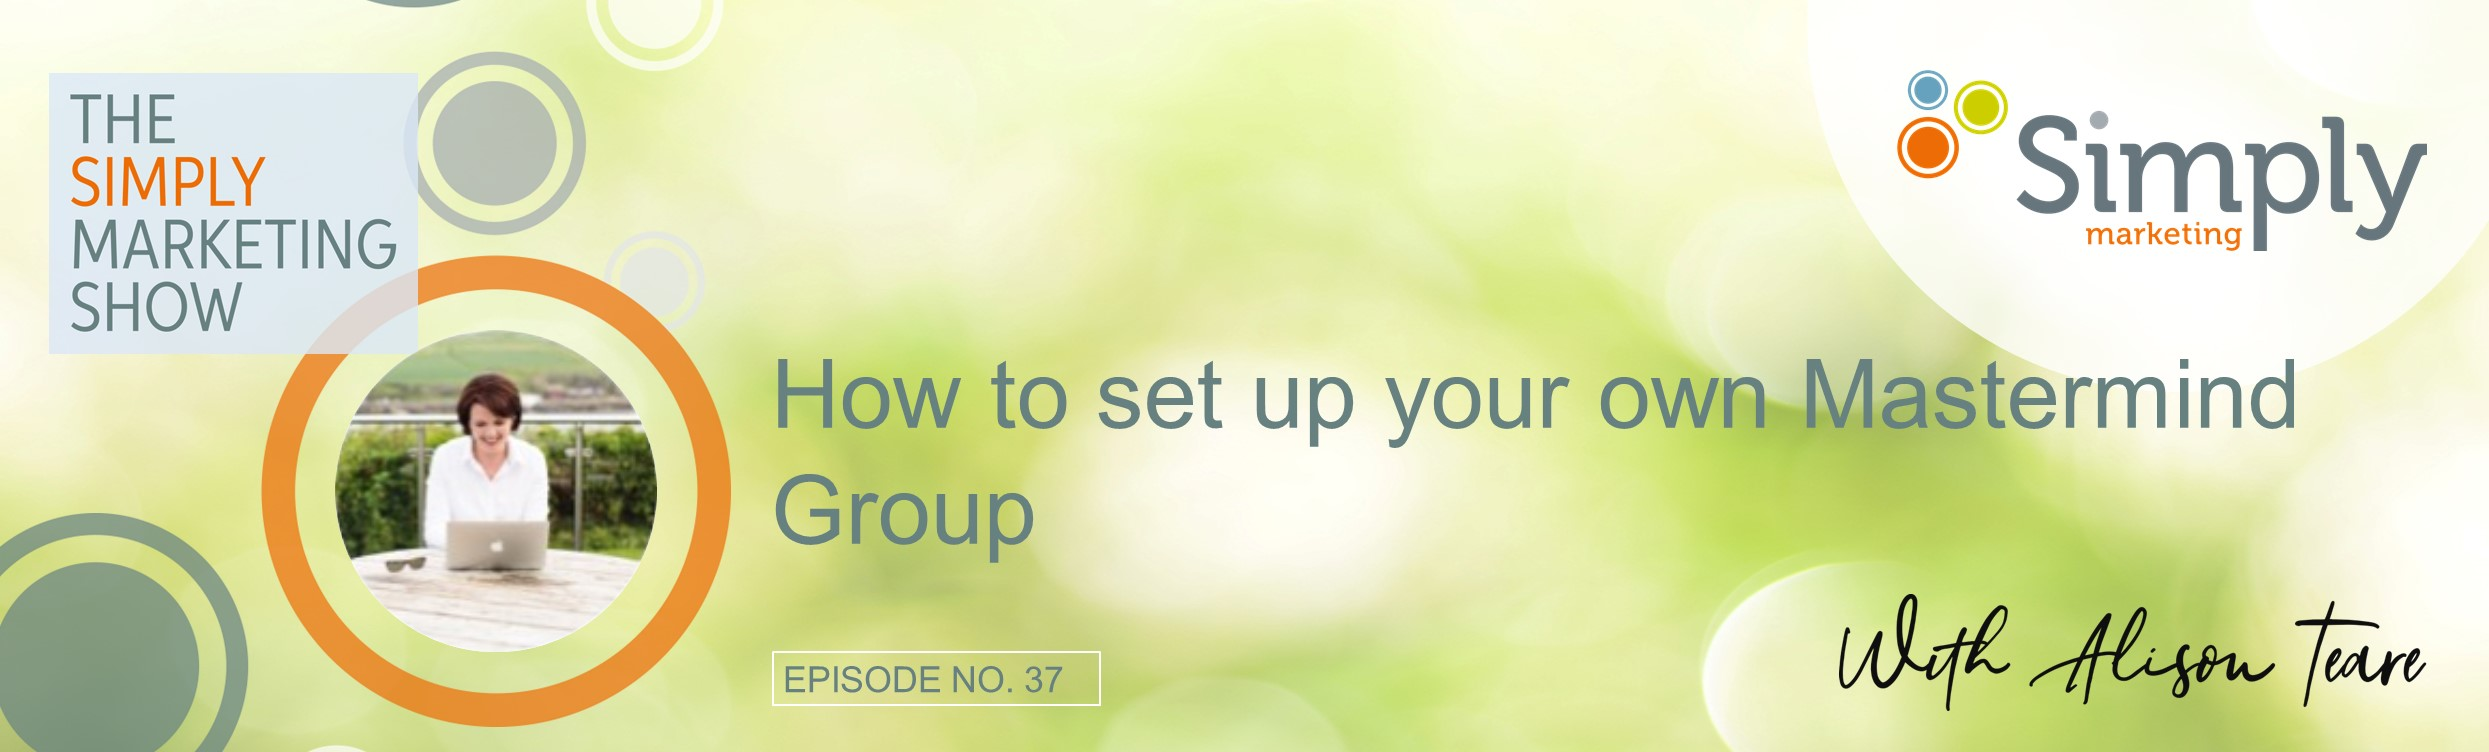 Set up your own Mastermind Group